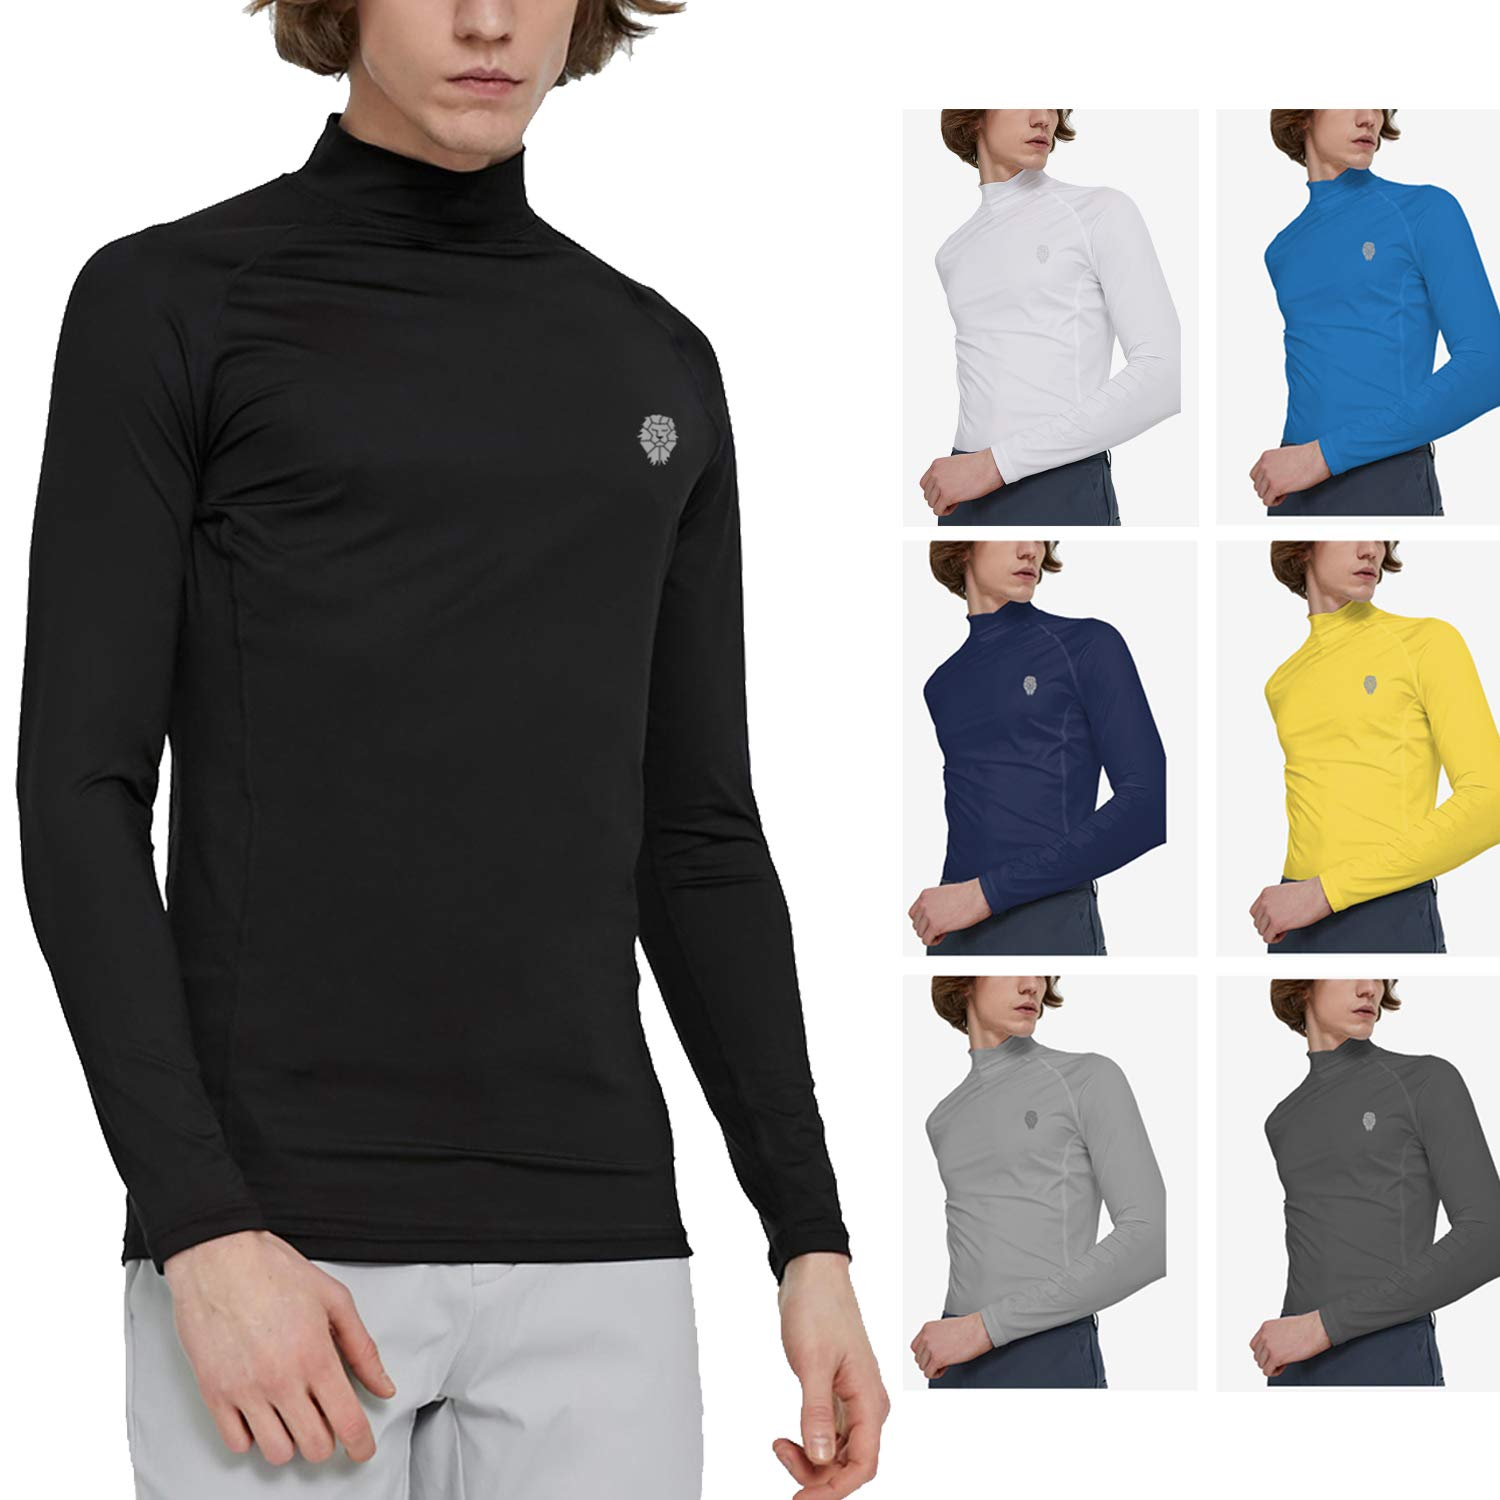 Men's Thermal Winter Gear Compression Baselayer Mock Neck Long Sleeve Shirts L Black by PIQIDIG